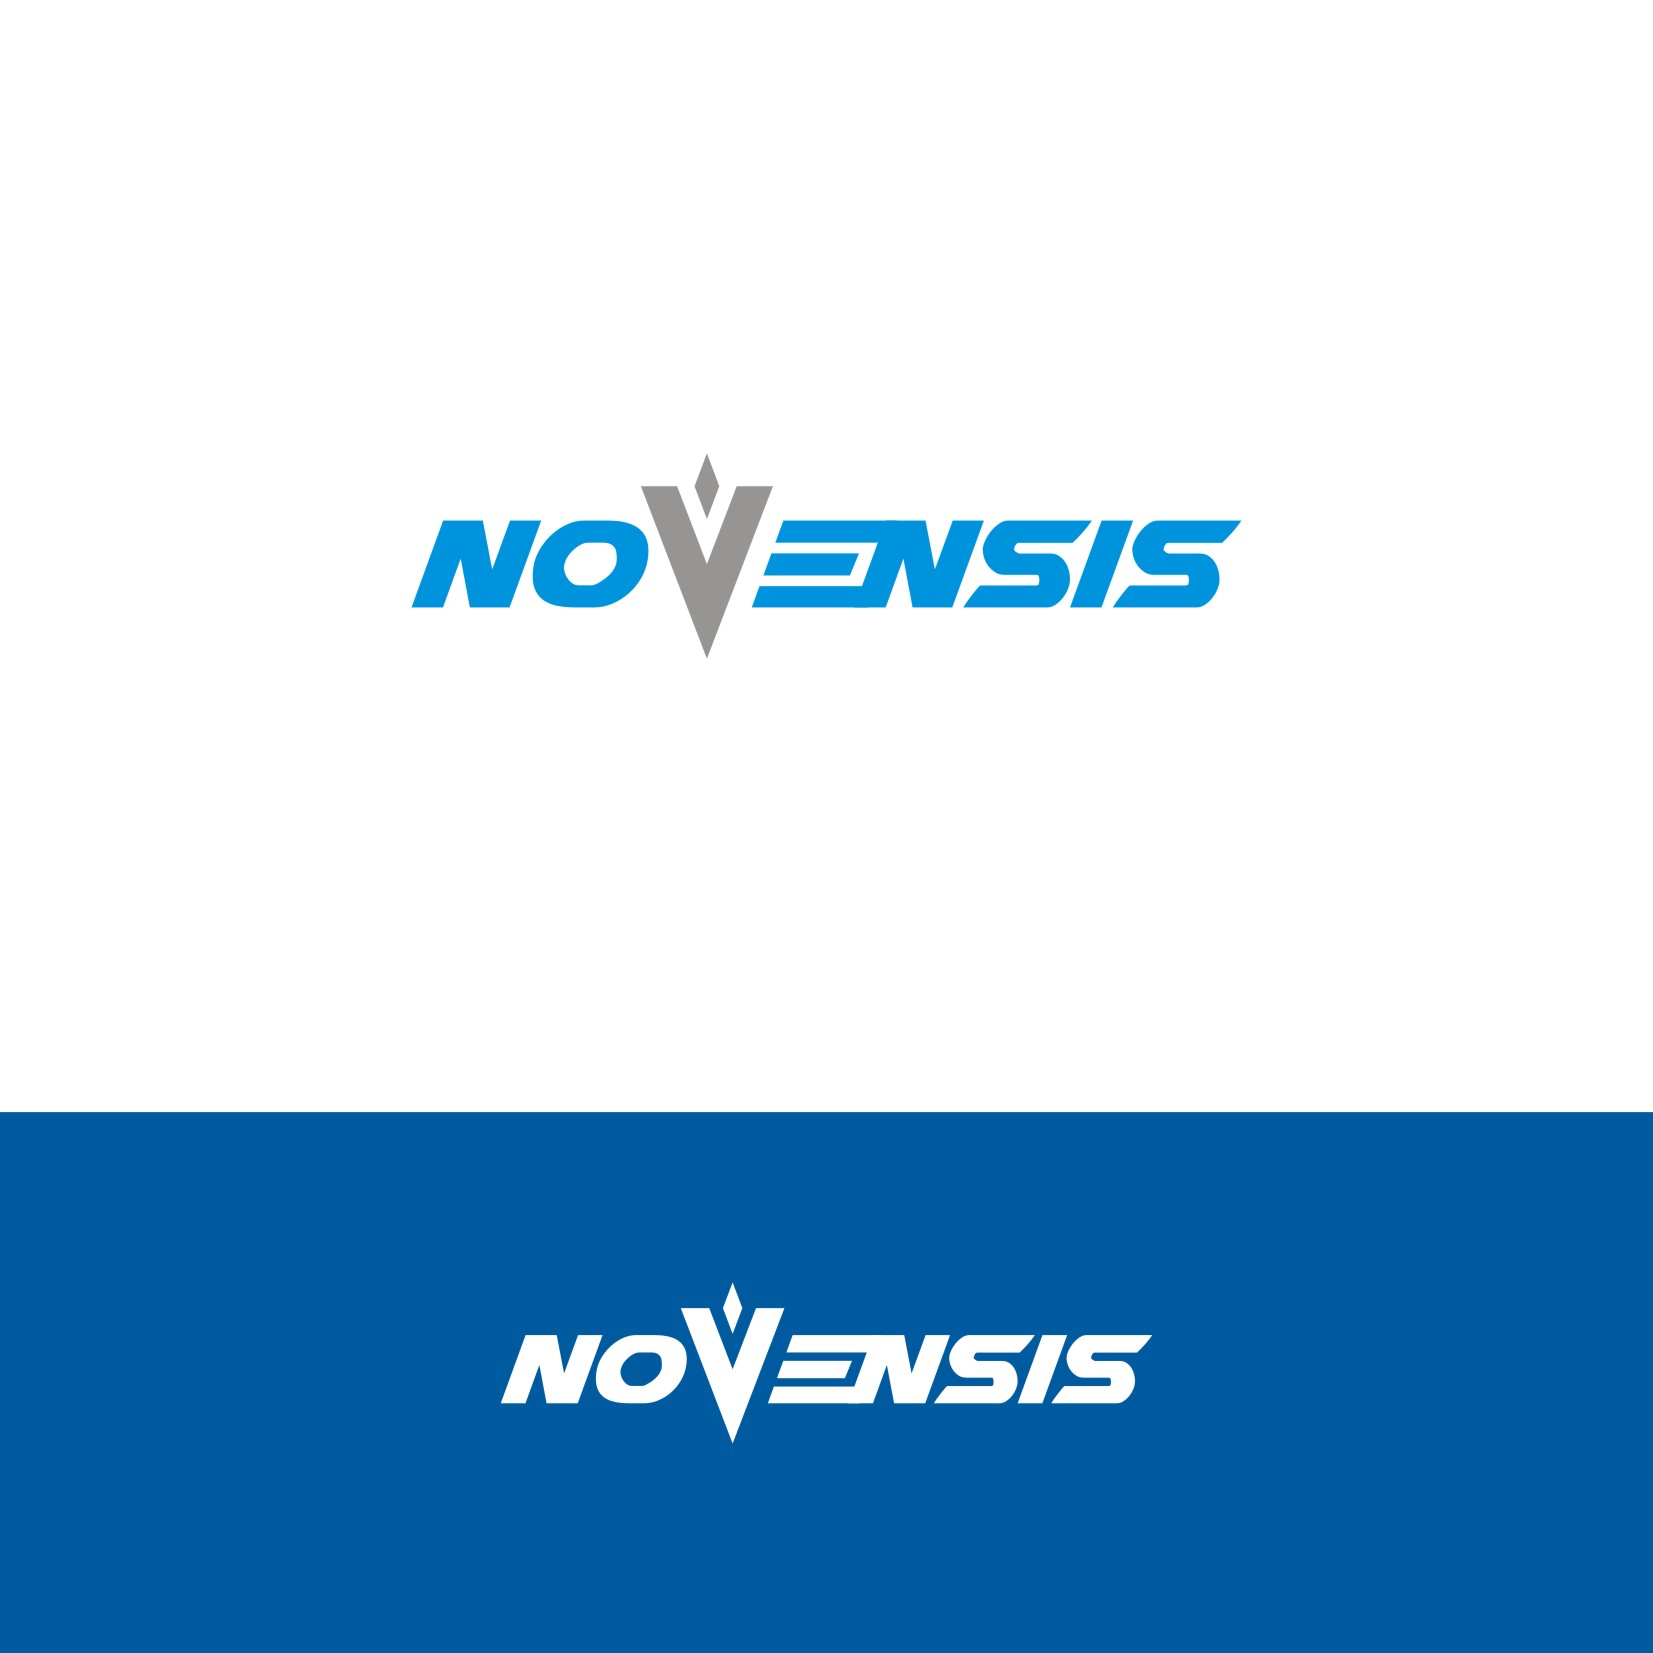 Logo Design by Jus Desain - Entry No. 195 in the Logo Design Contest Novensis Logo Design.